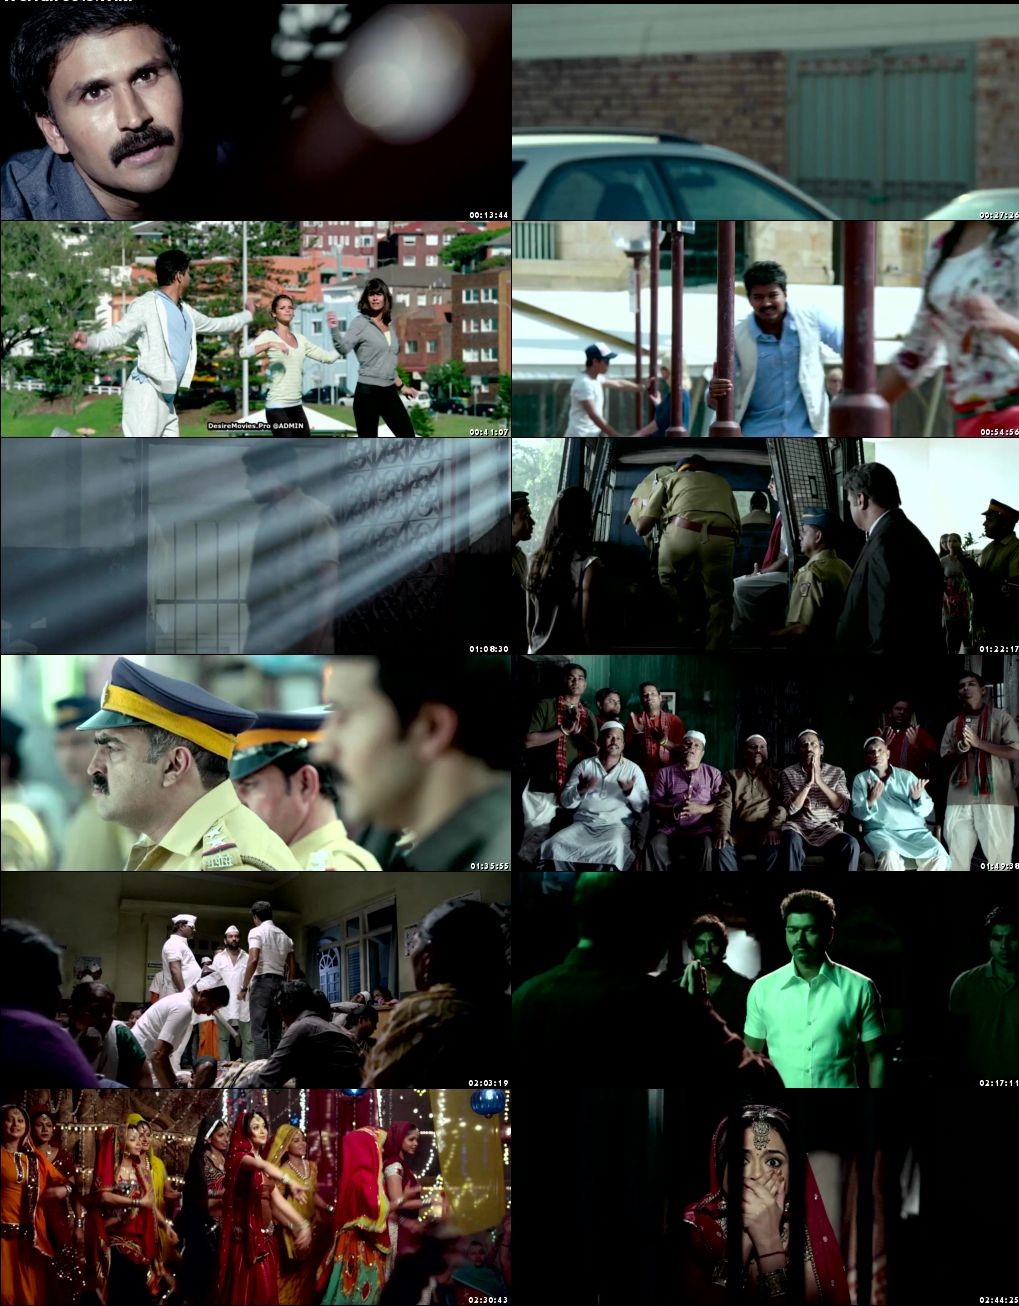 Thalaivaa 2013 Hindi Dubbed Movie Download BRRip 720p